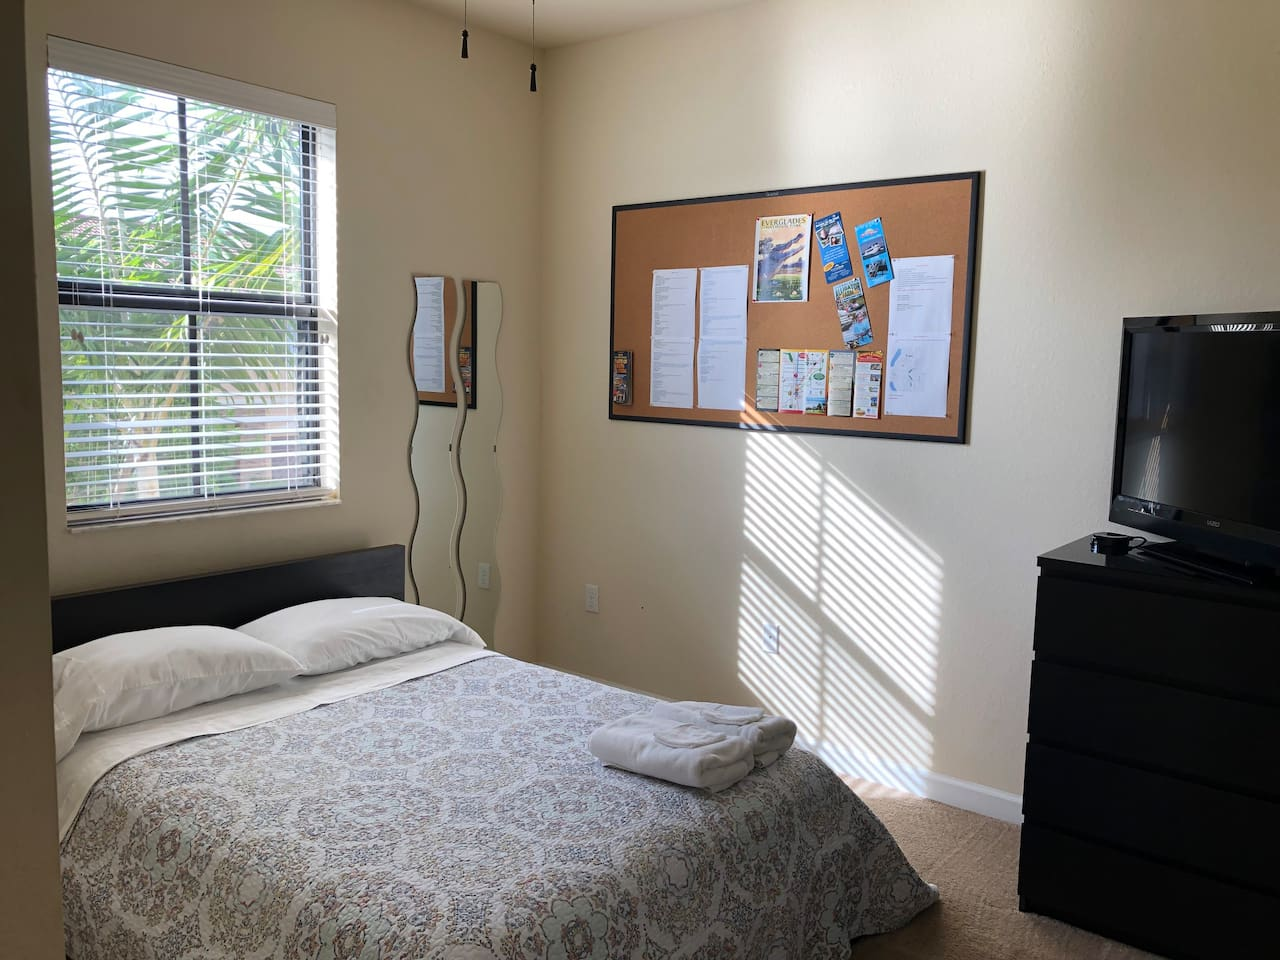 Bedroom with full bed on second floor. View to the exterior